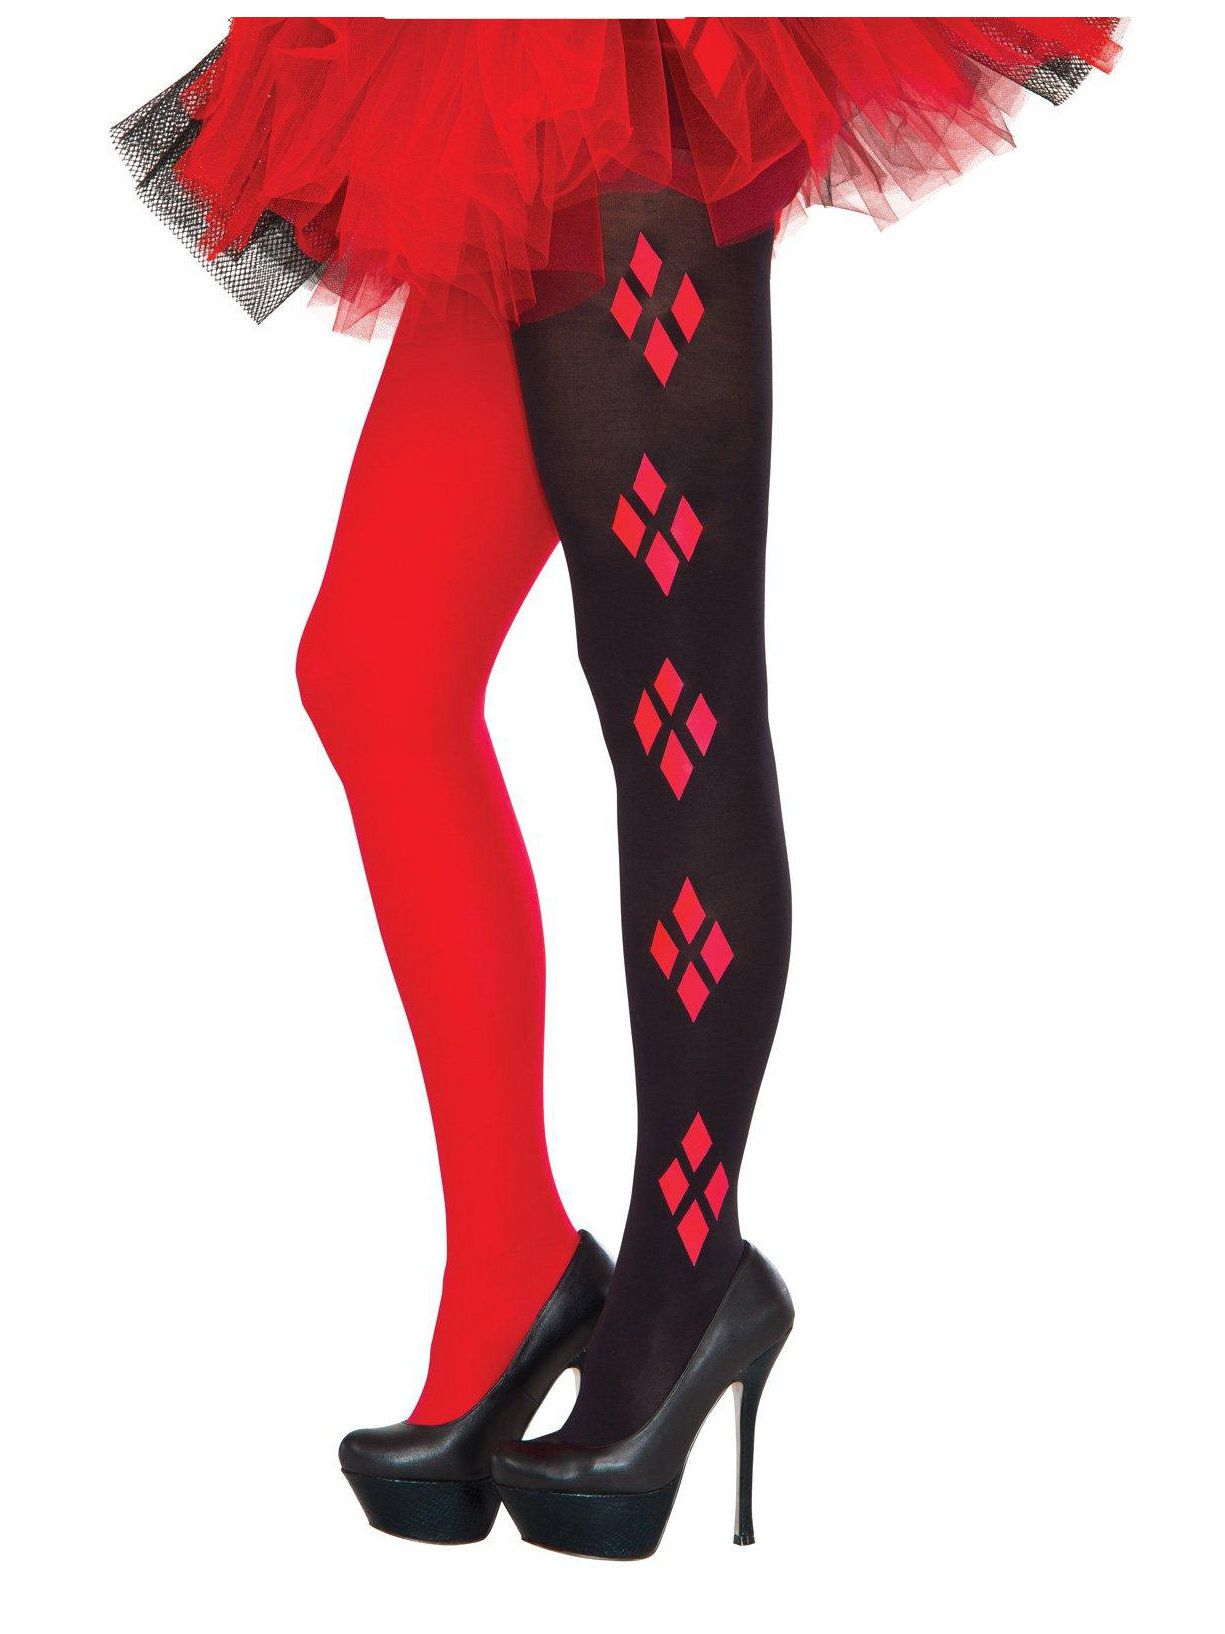 5fac3e98b Harley Quinn Tights For Adults - Costume Accessories for 2018 ...